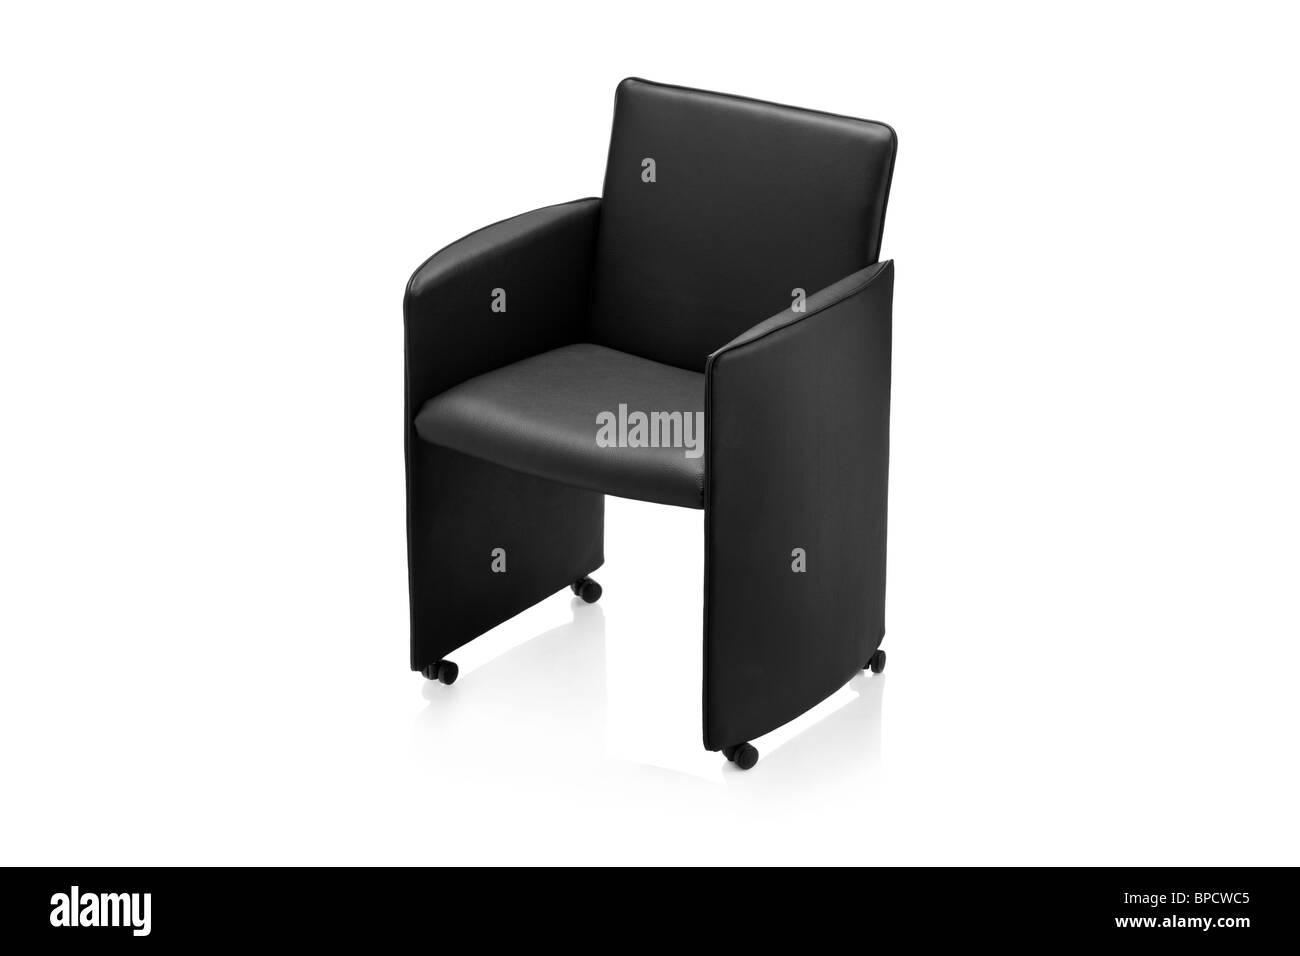 Image of a modern black leather armchair - Stock Image